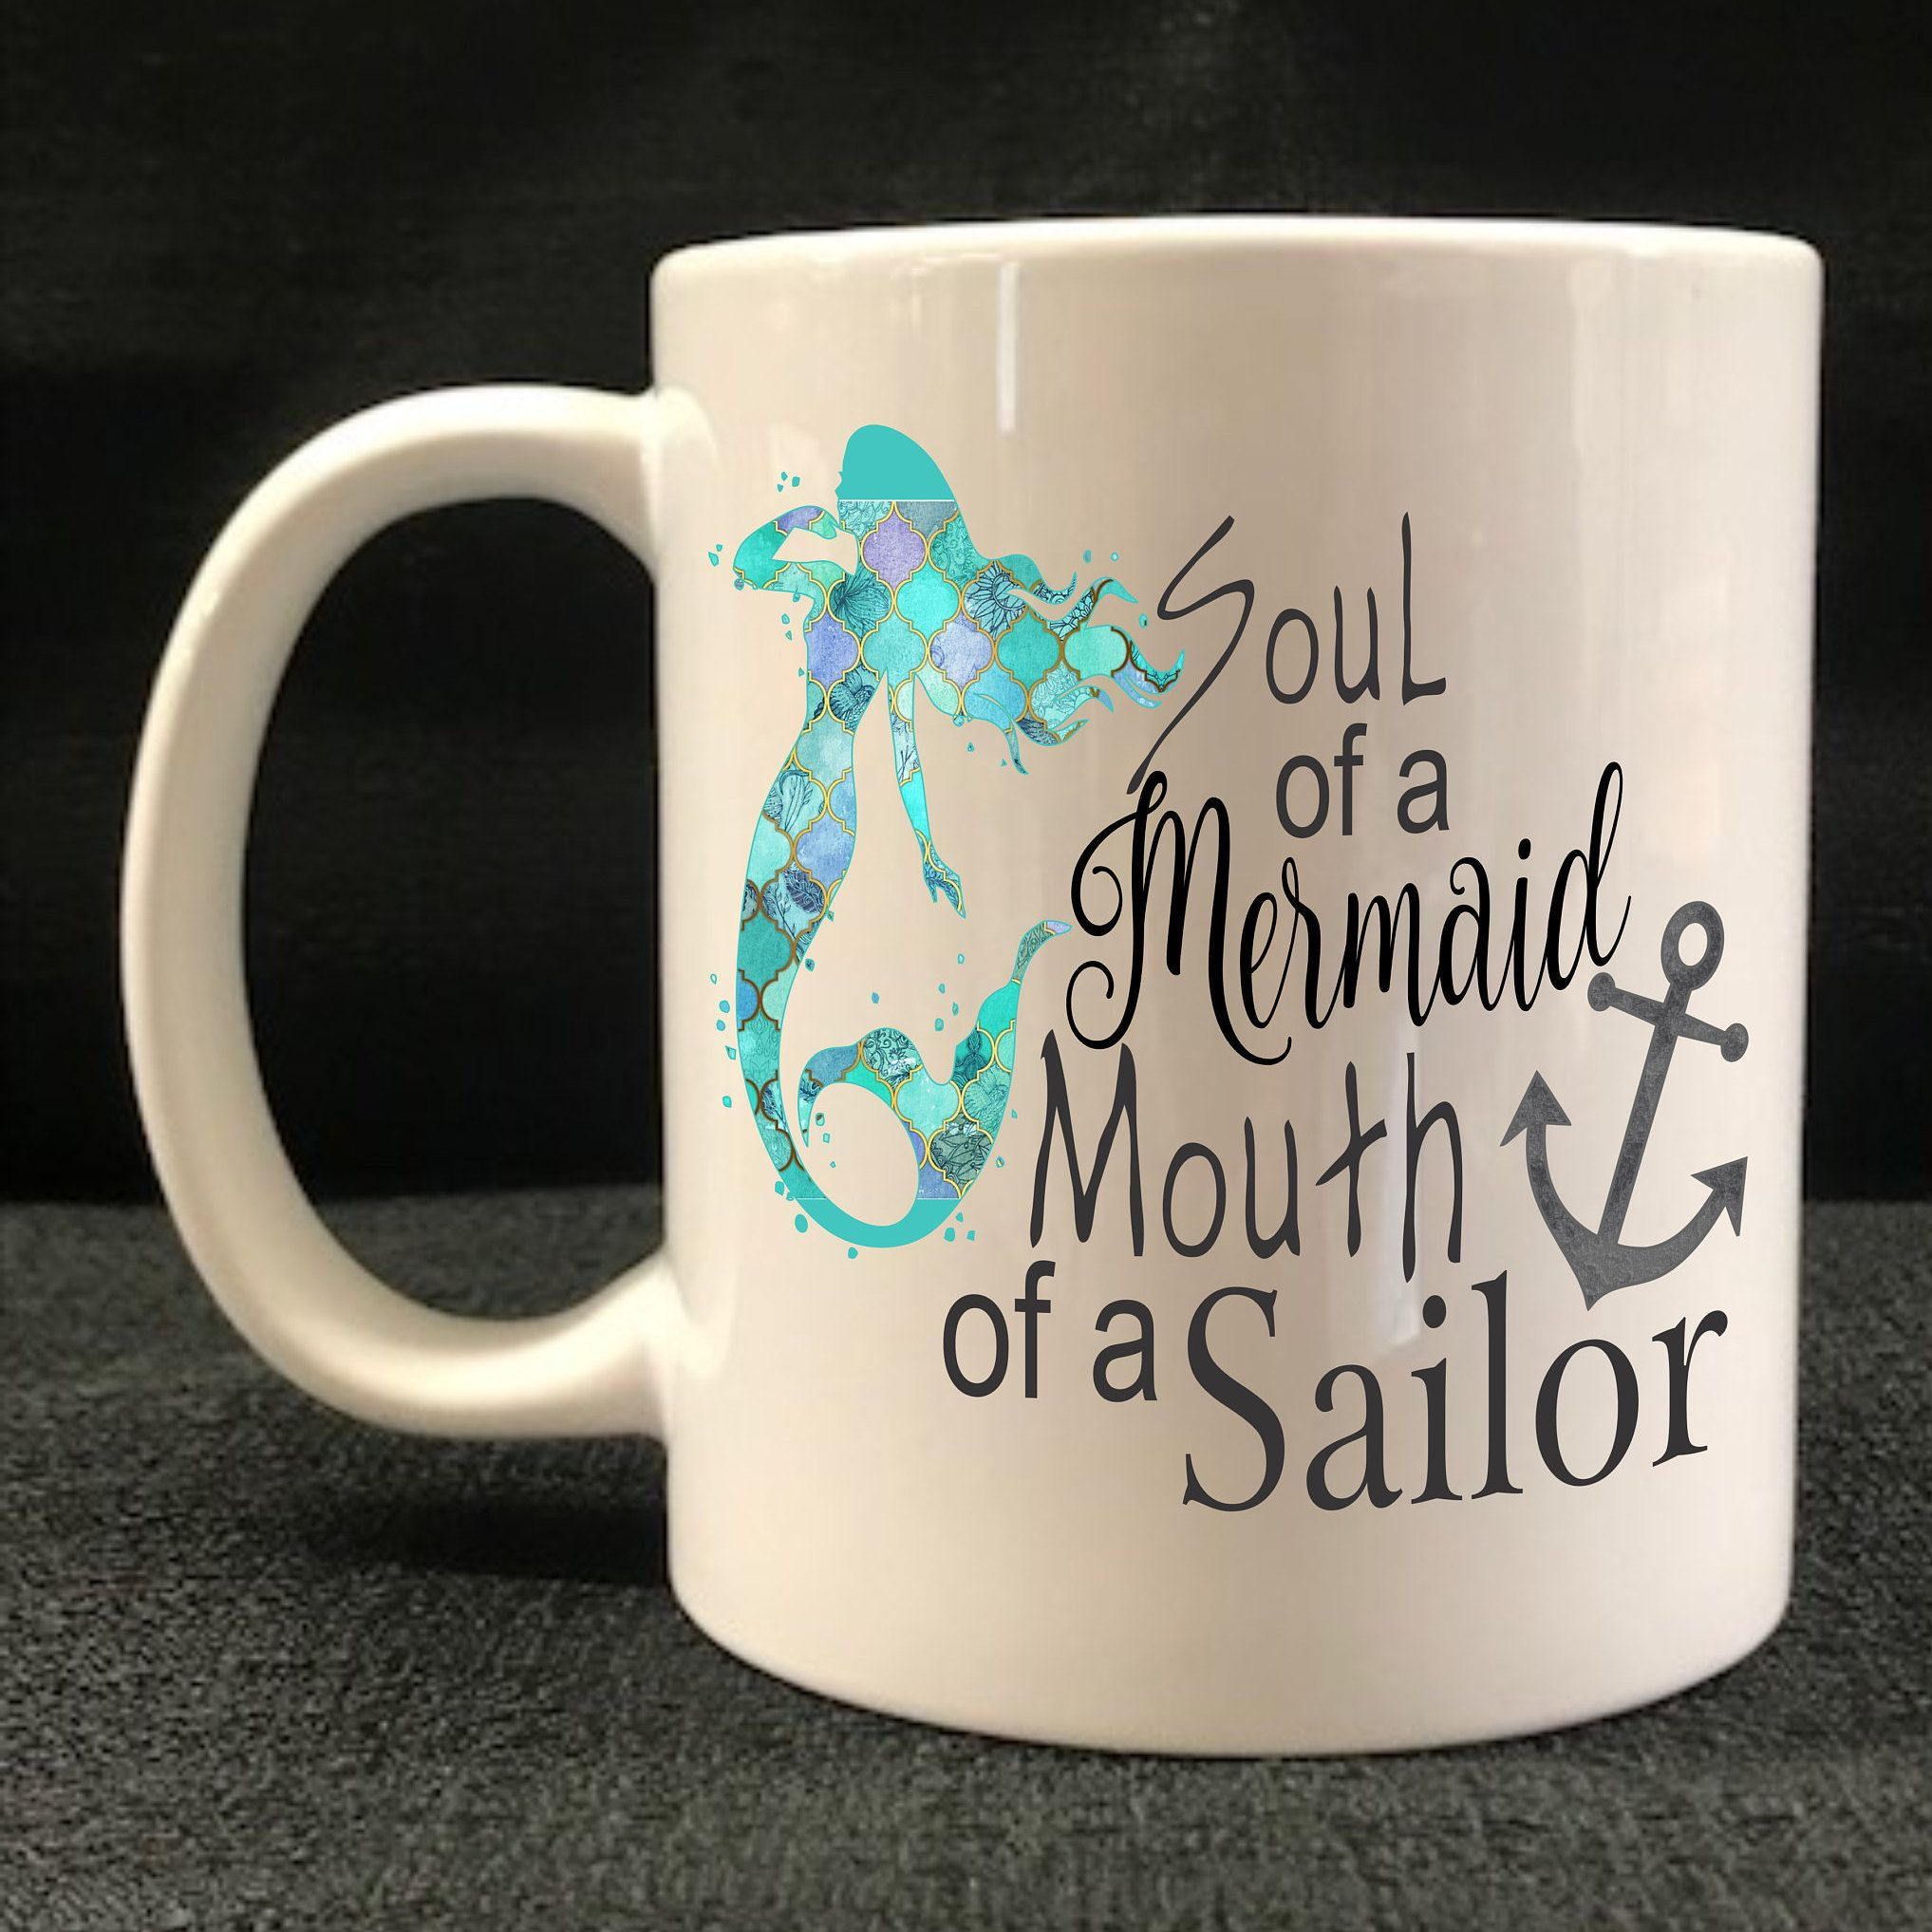 Mug, Coffee Cup, Soul of a Mermaid Mouth of a Sailor